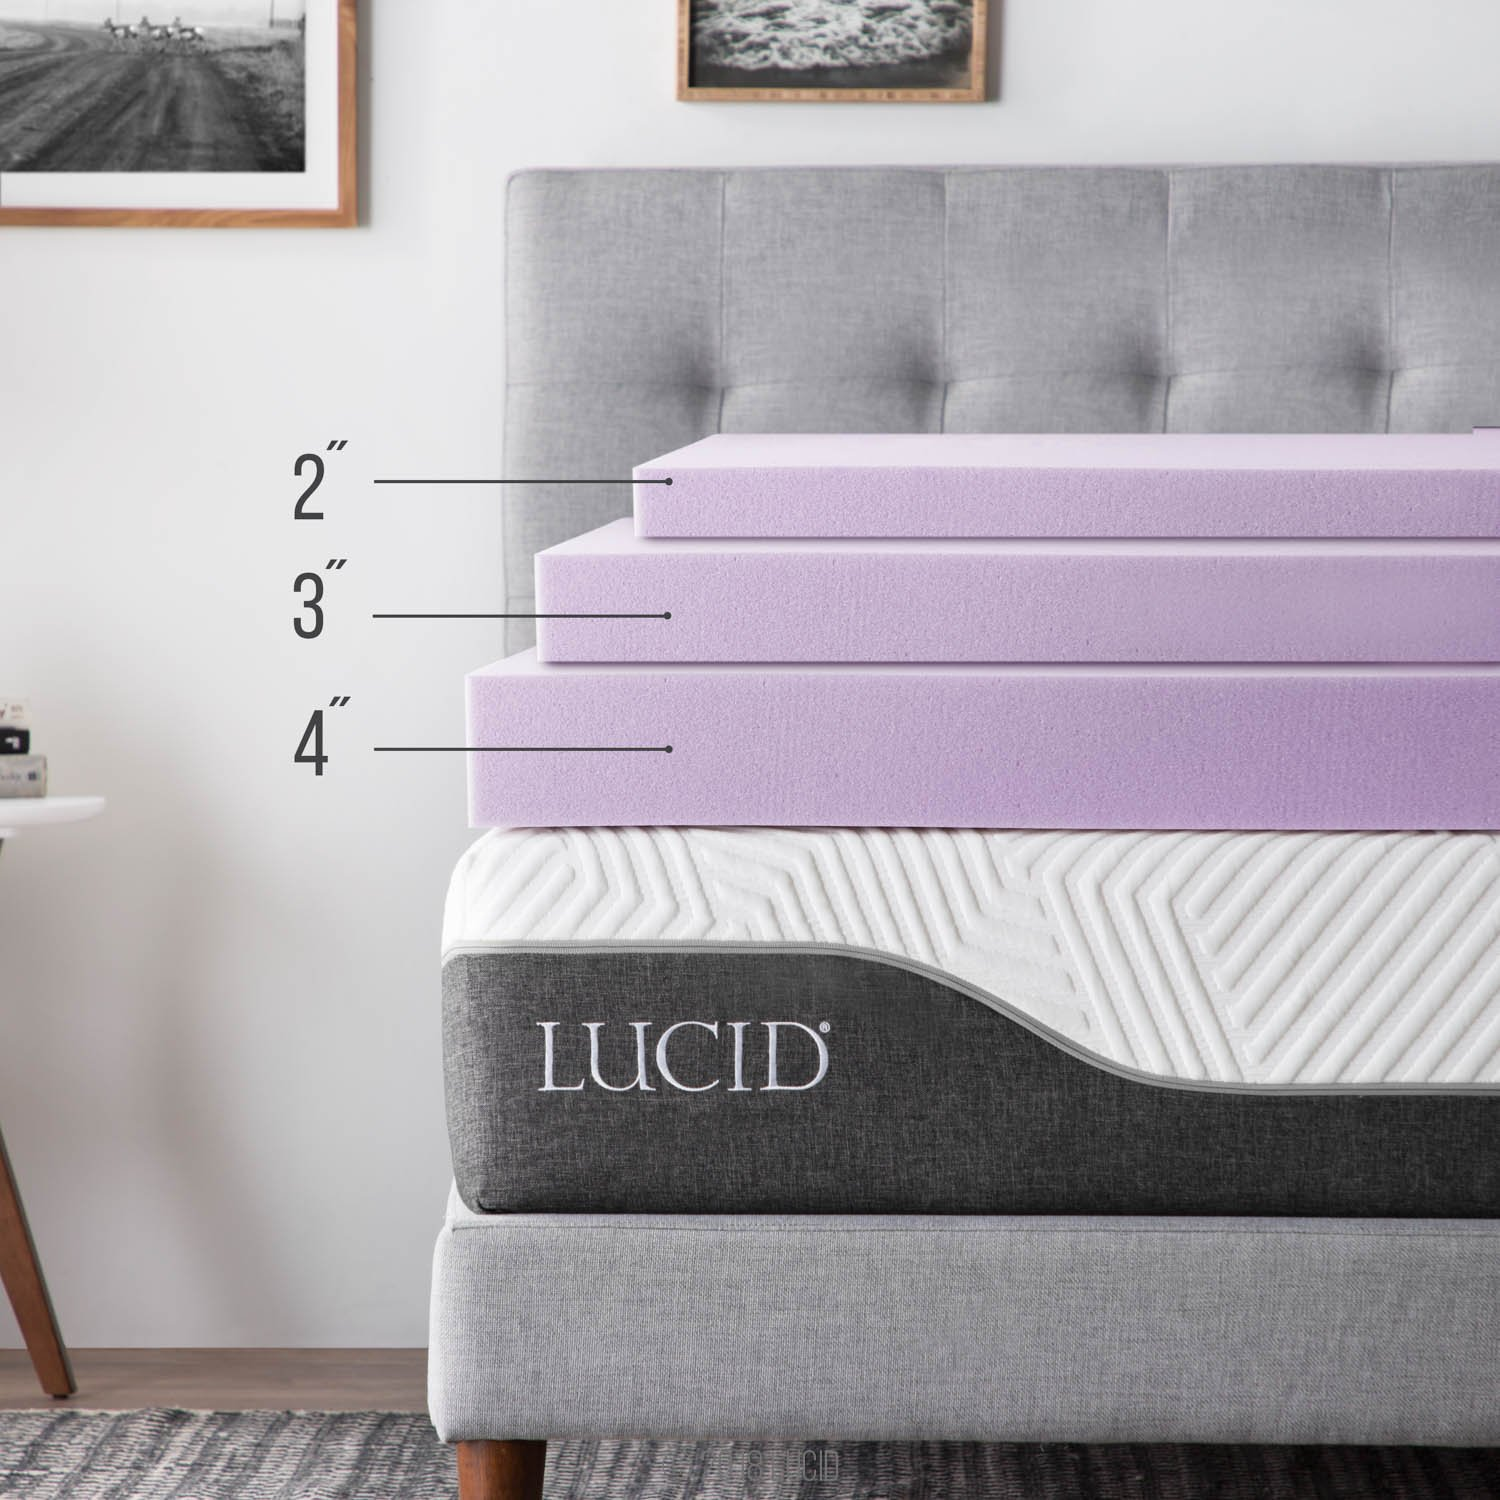 Amazoncom LUCID 2 inch Lavender Infused Memory